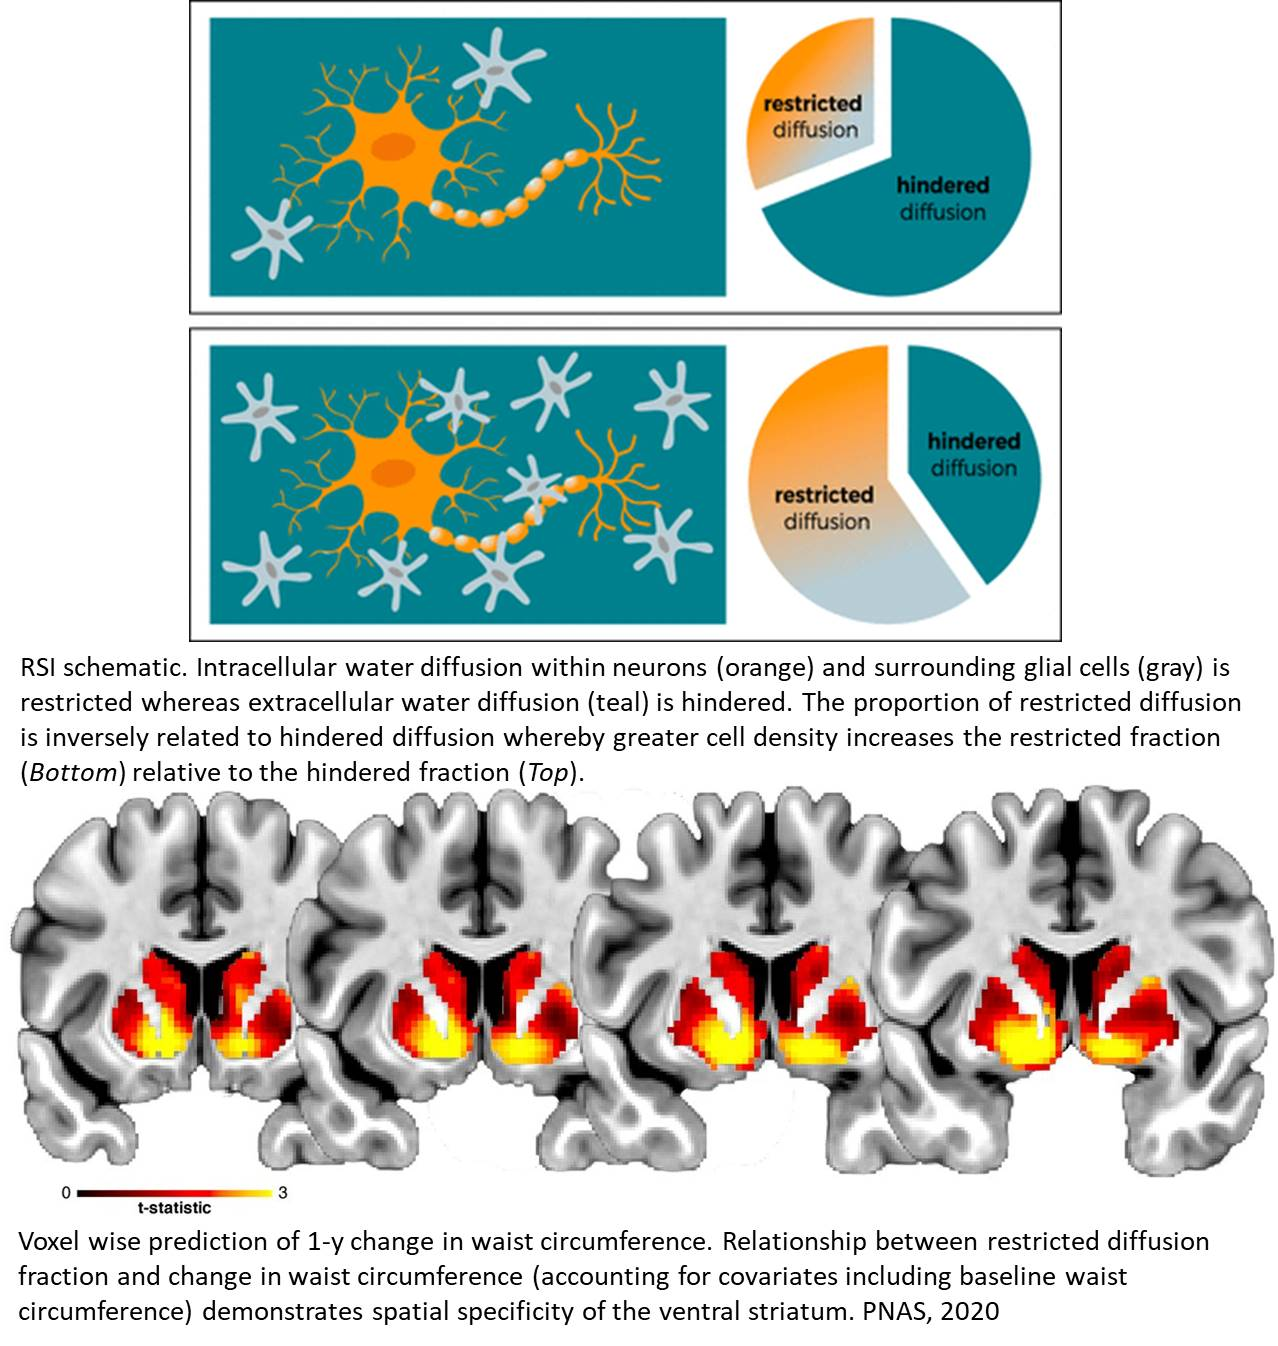 Nucleus accumbens cytoarchitecture predicts weight gain in children